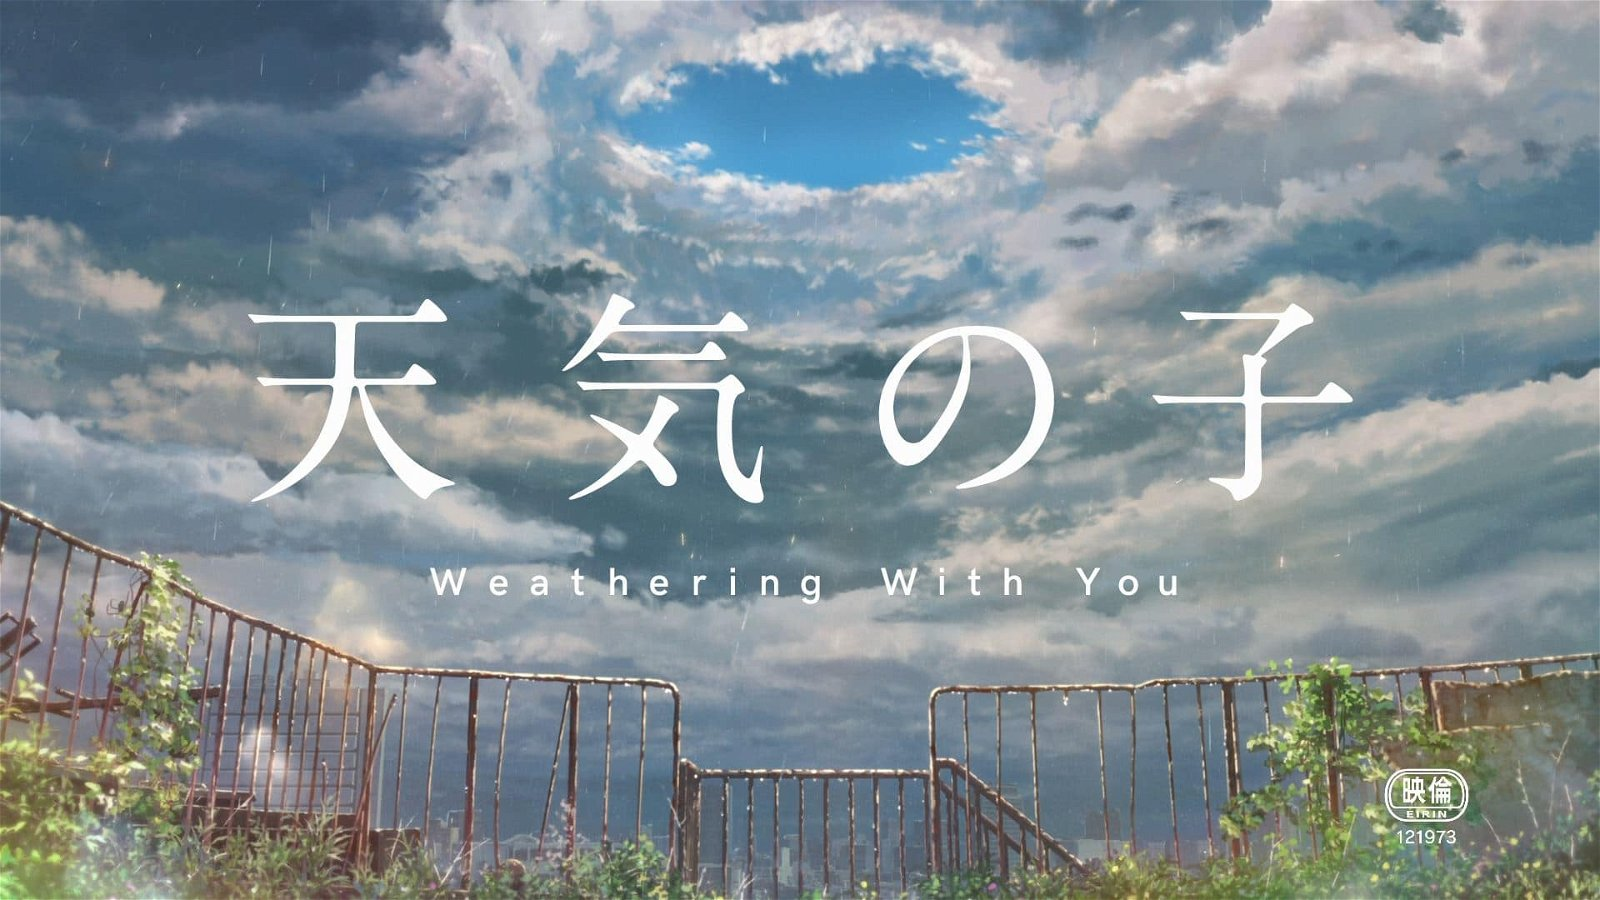 With you weathering